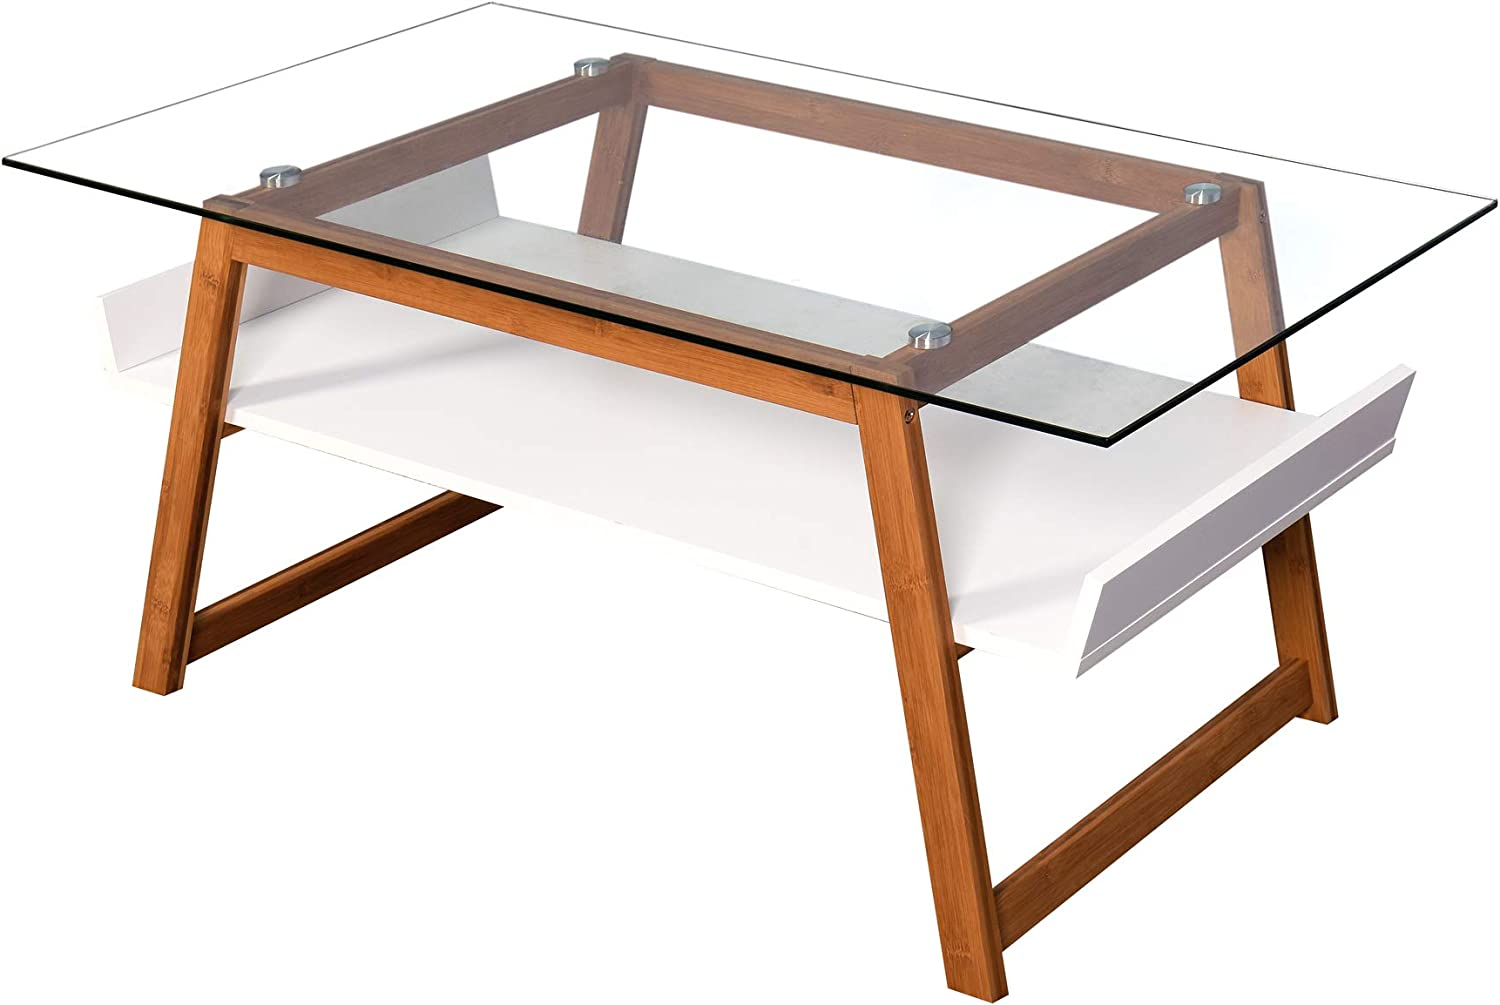 Cpallie Rectangle Glass Coffee Table Charlotte OFFicial site Mall Furniture: Modern Storage S